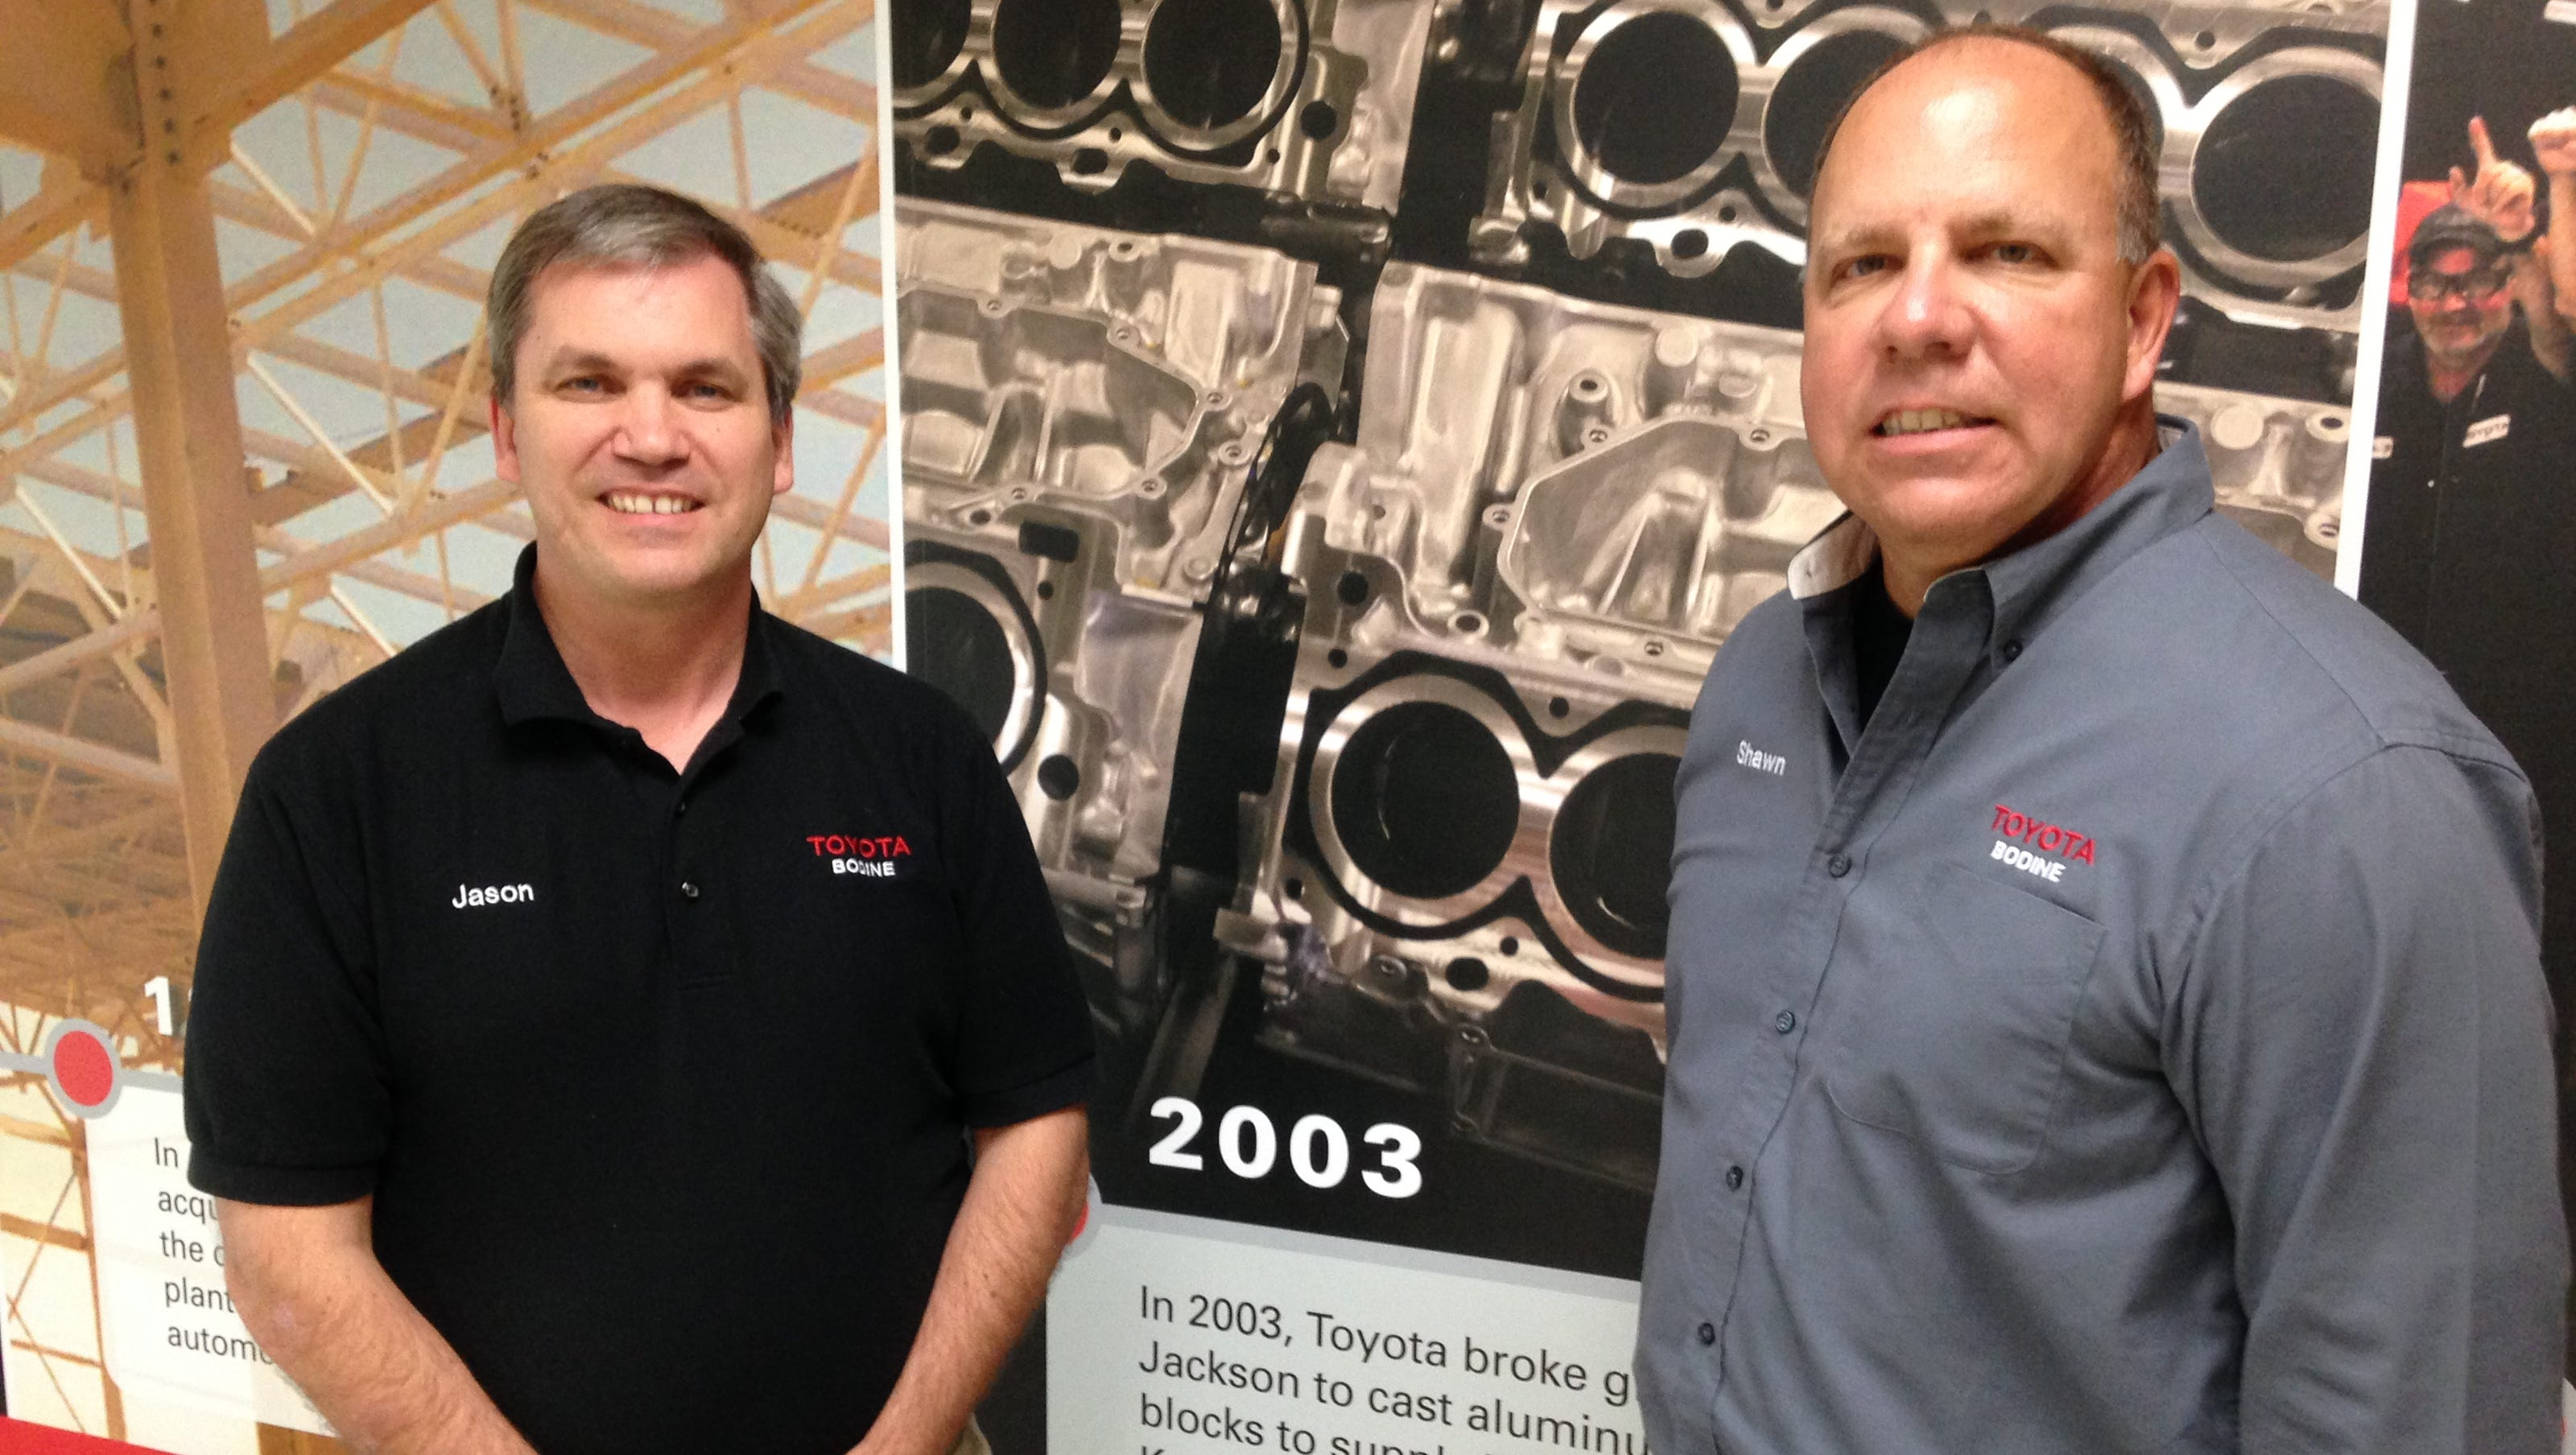 Toyota Bodine Aluminum builds morale at Jackson site